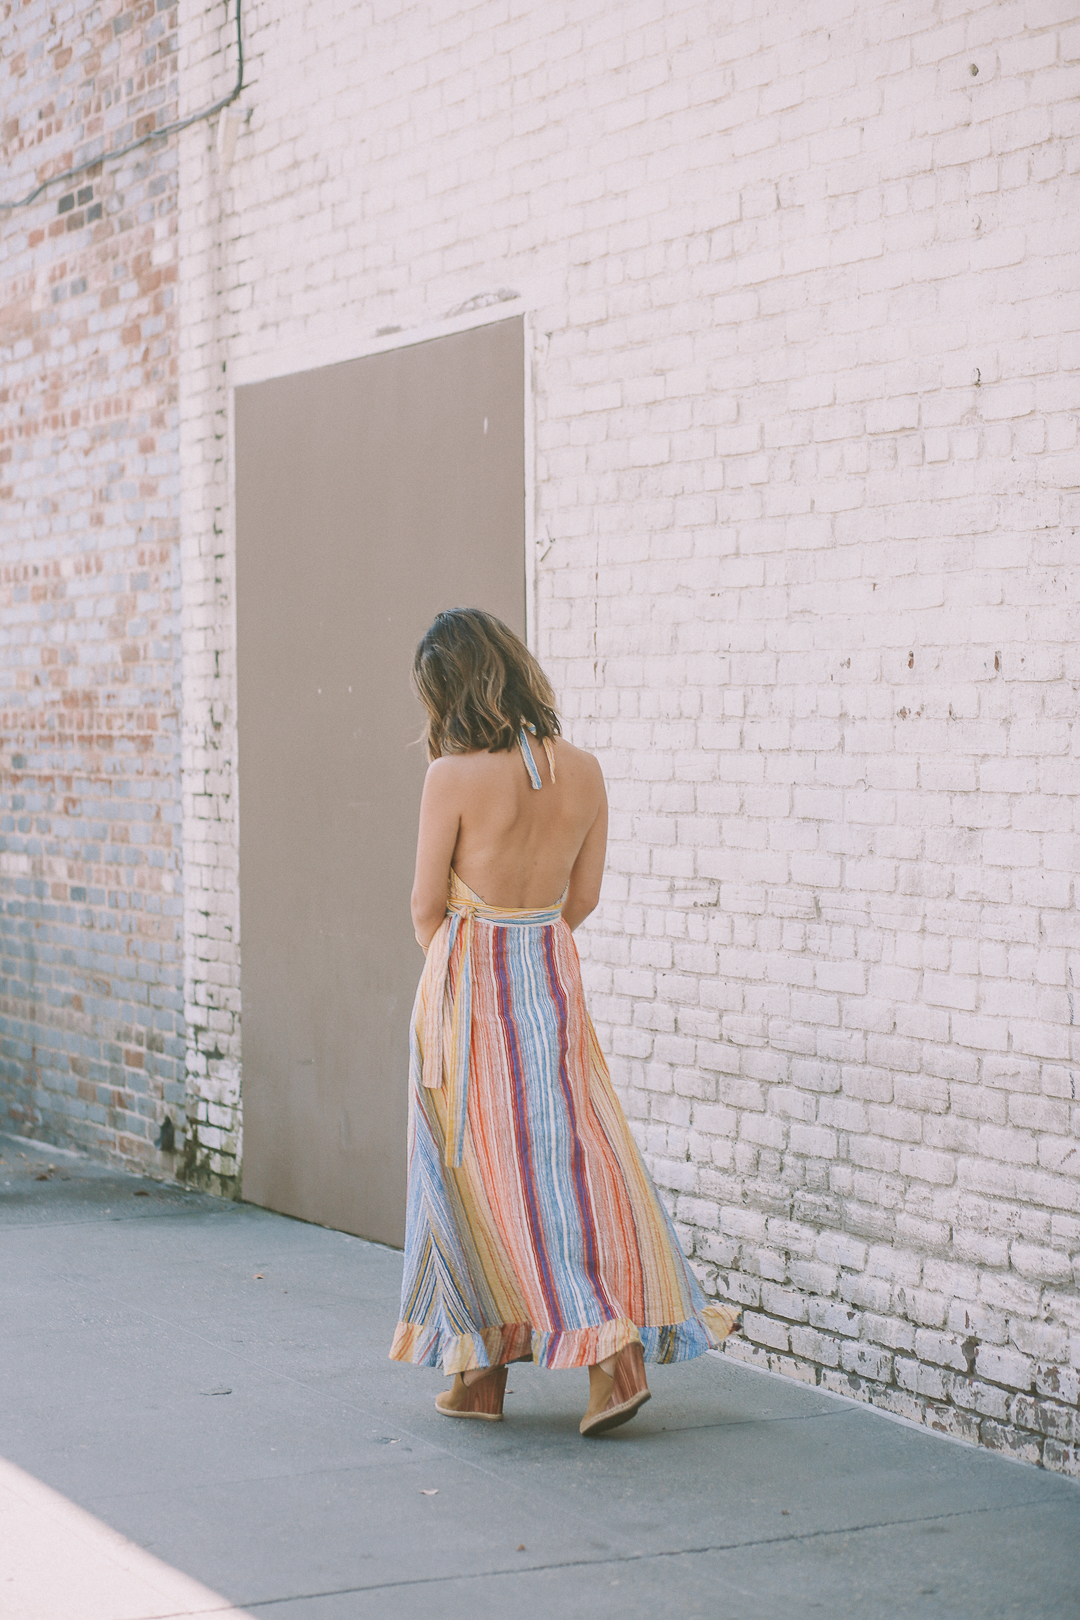 a vintage splendor wears a vintage maxi dress